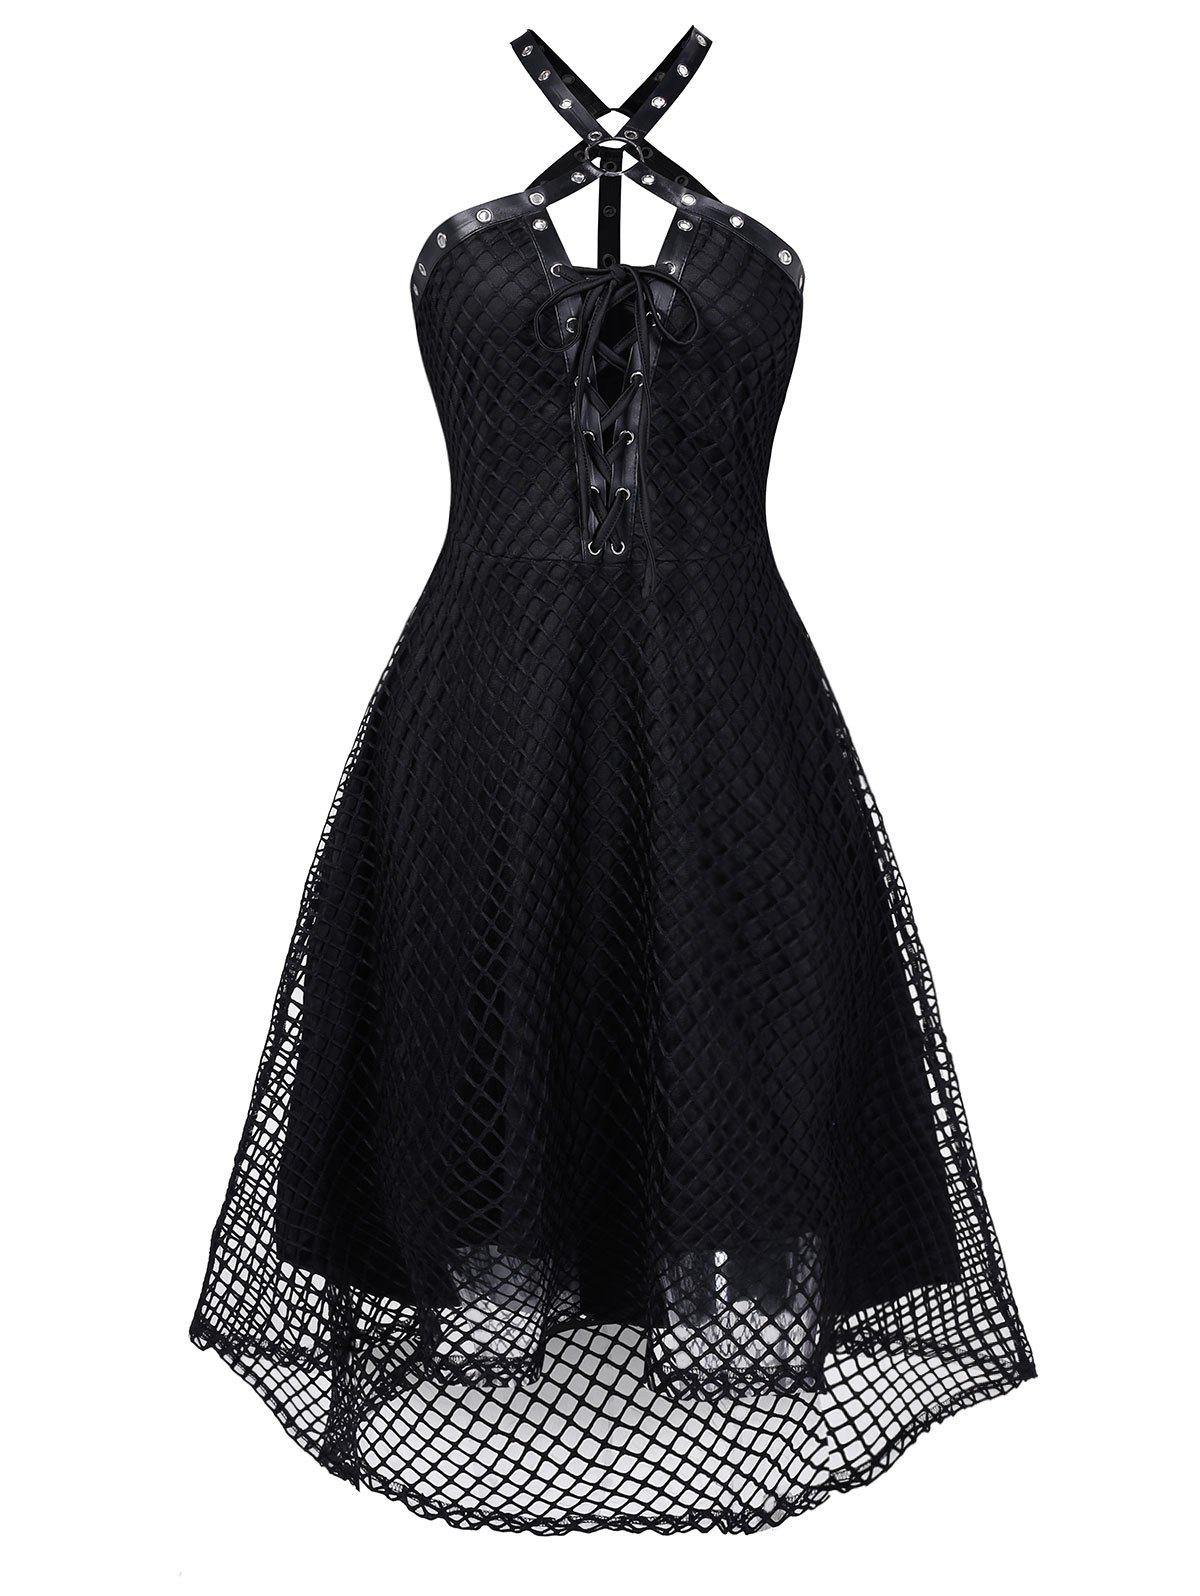 Unique Harness Insert Lace-up High Low Fishnet Gothic Dress